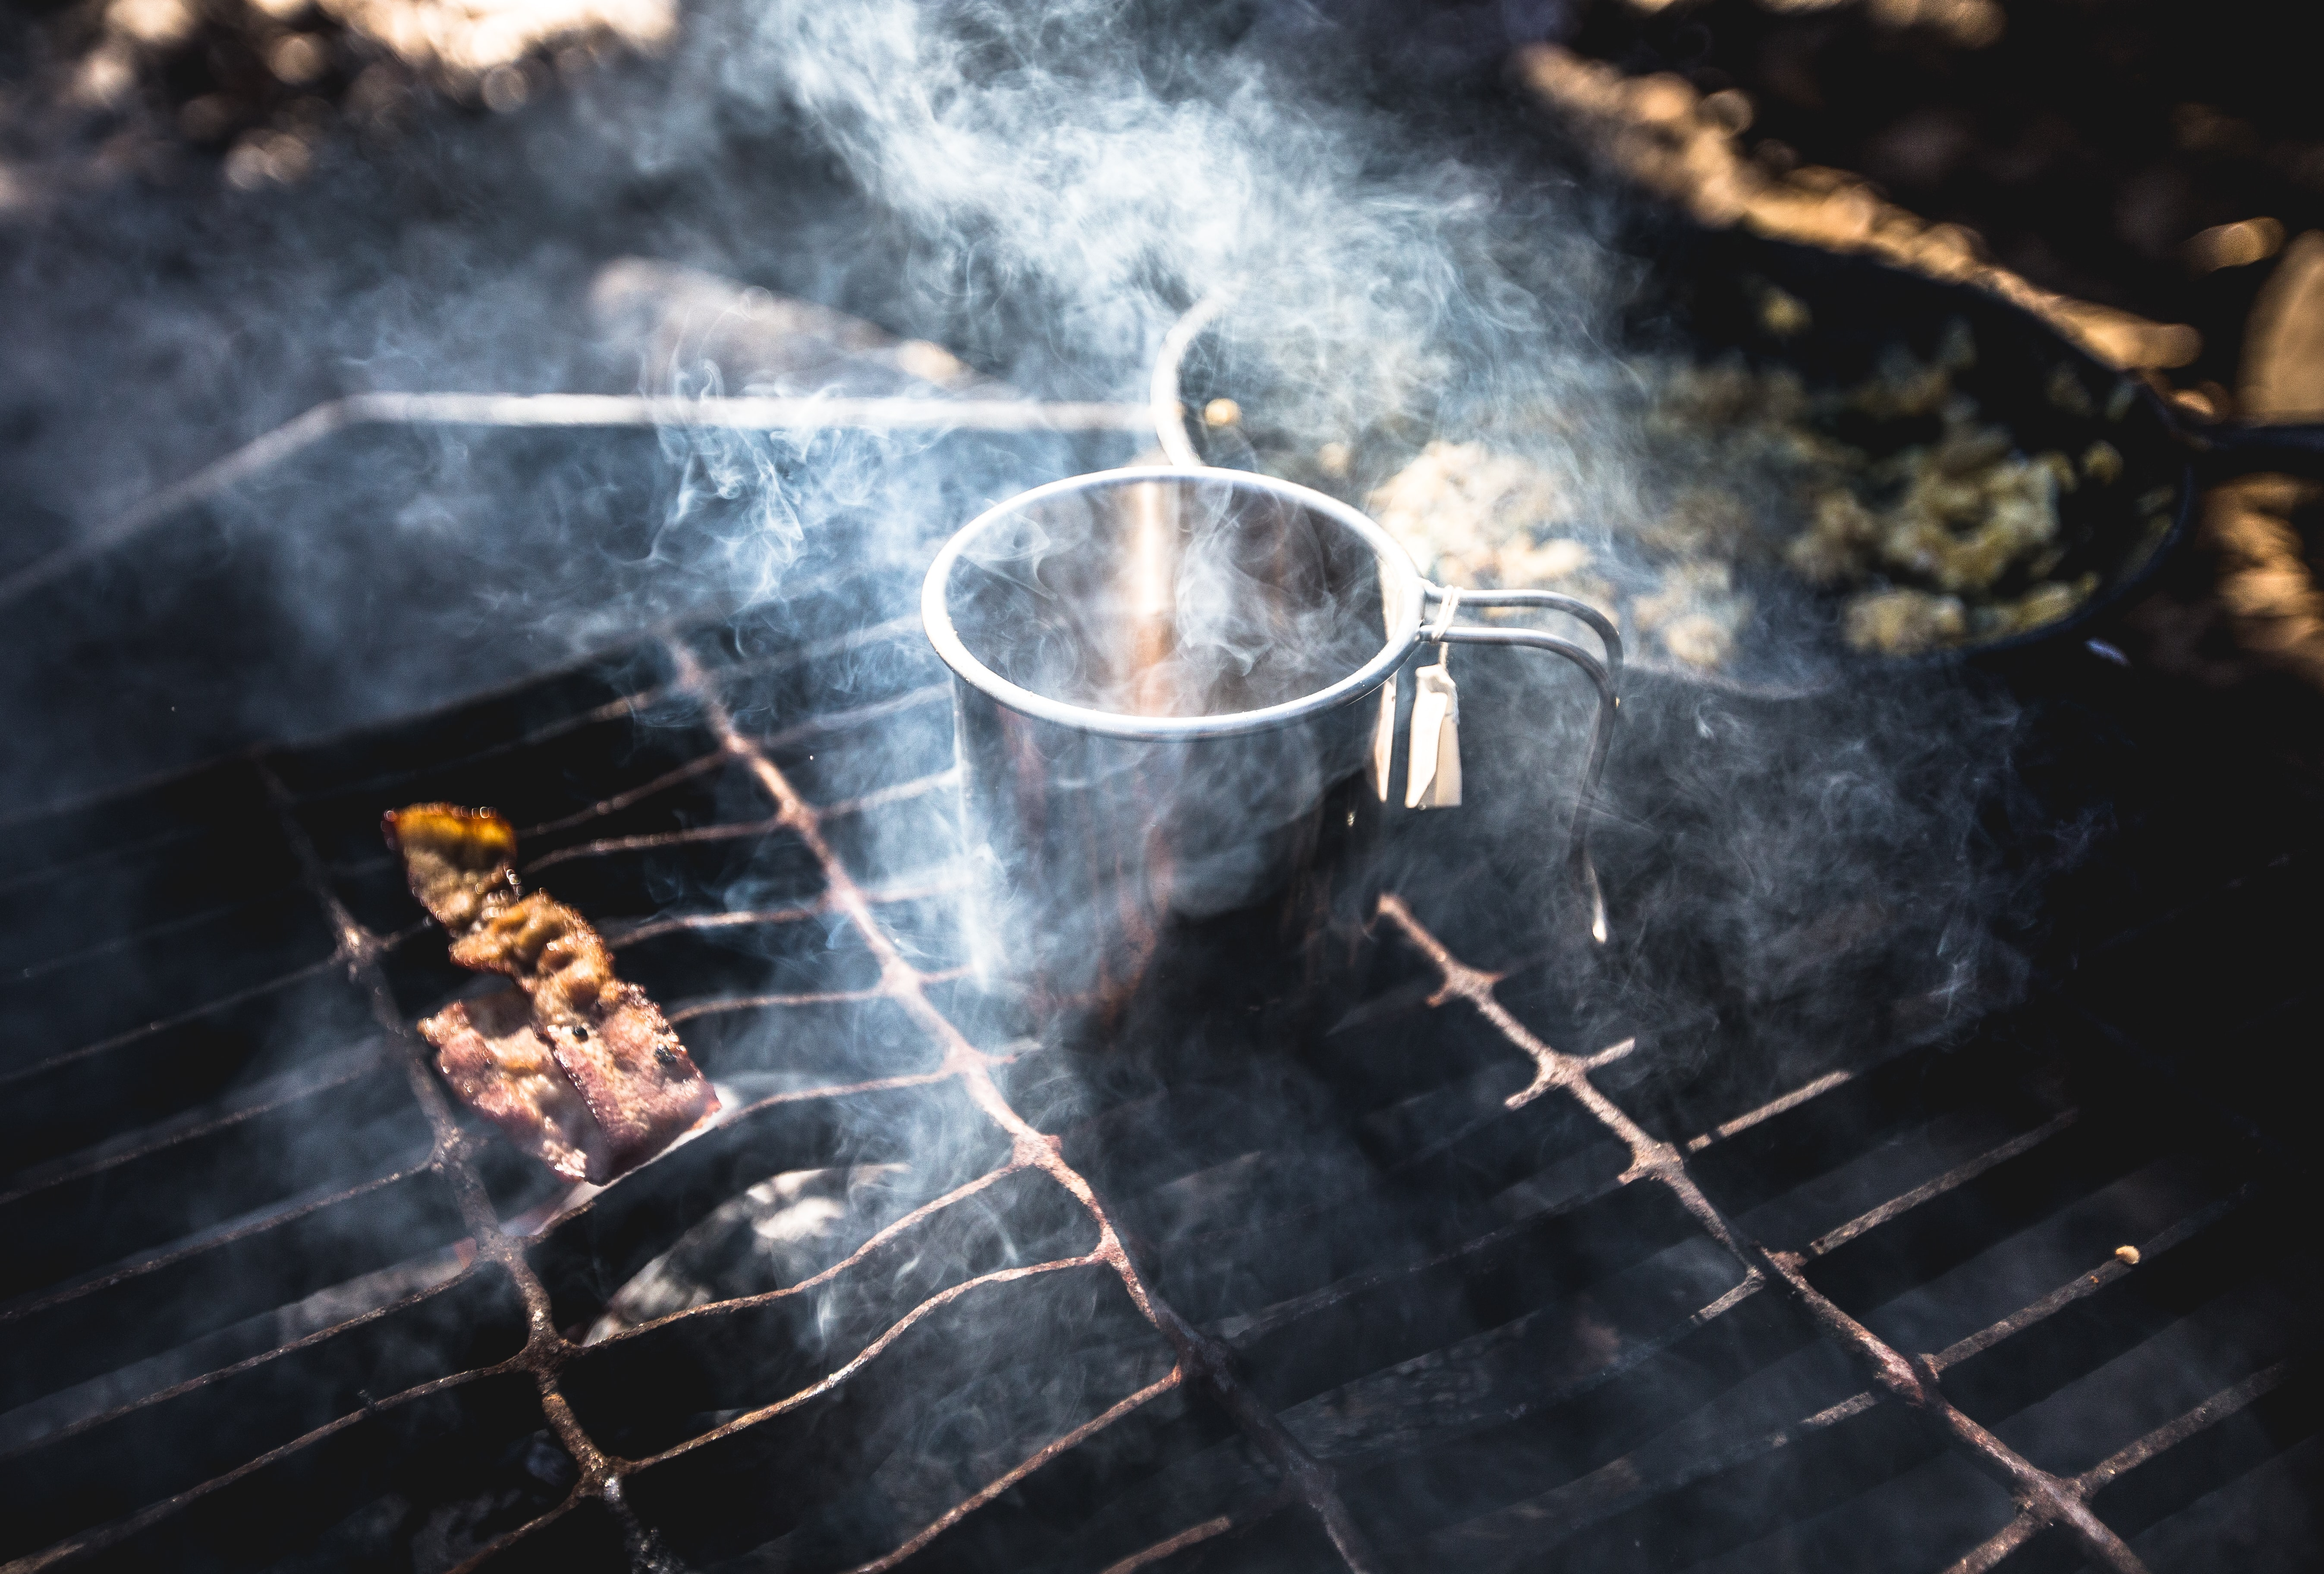 grilling meat beside stainless steel cup